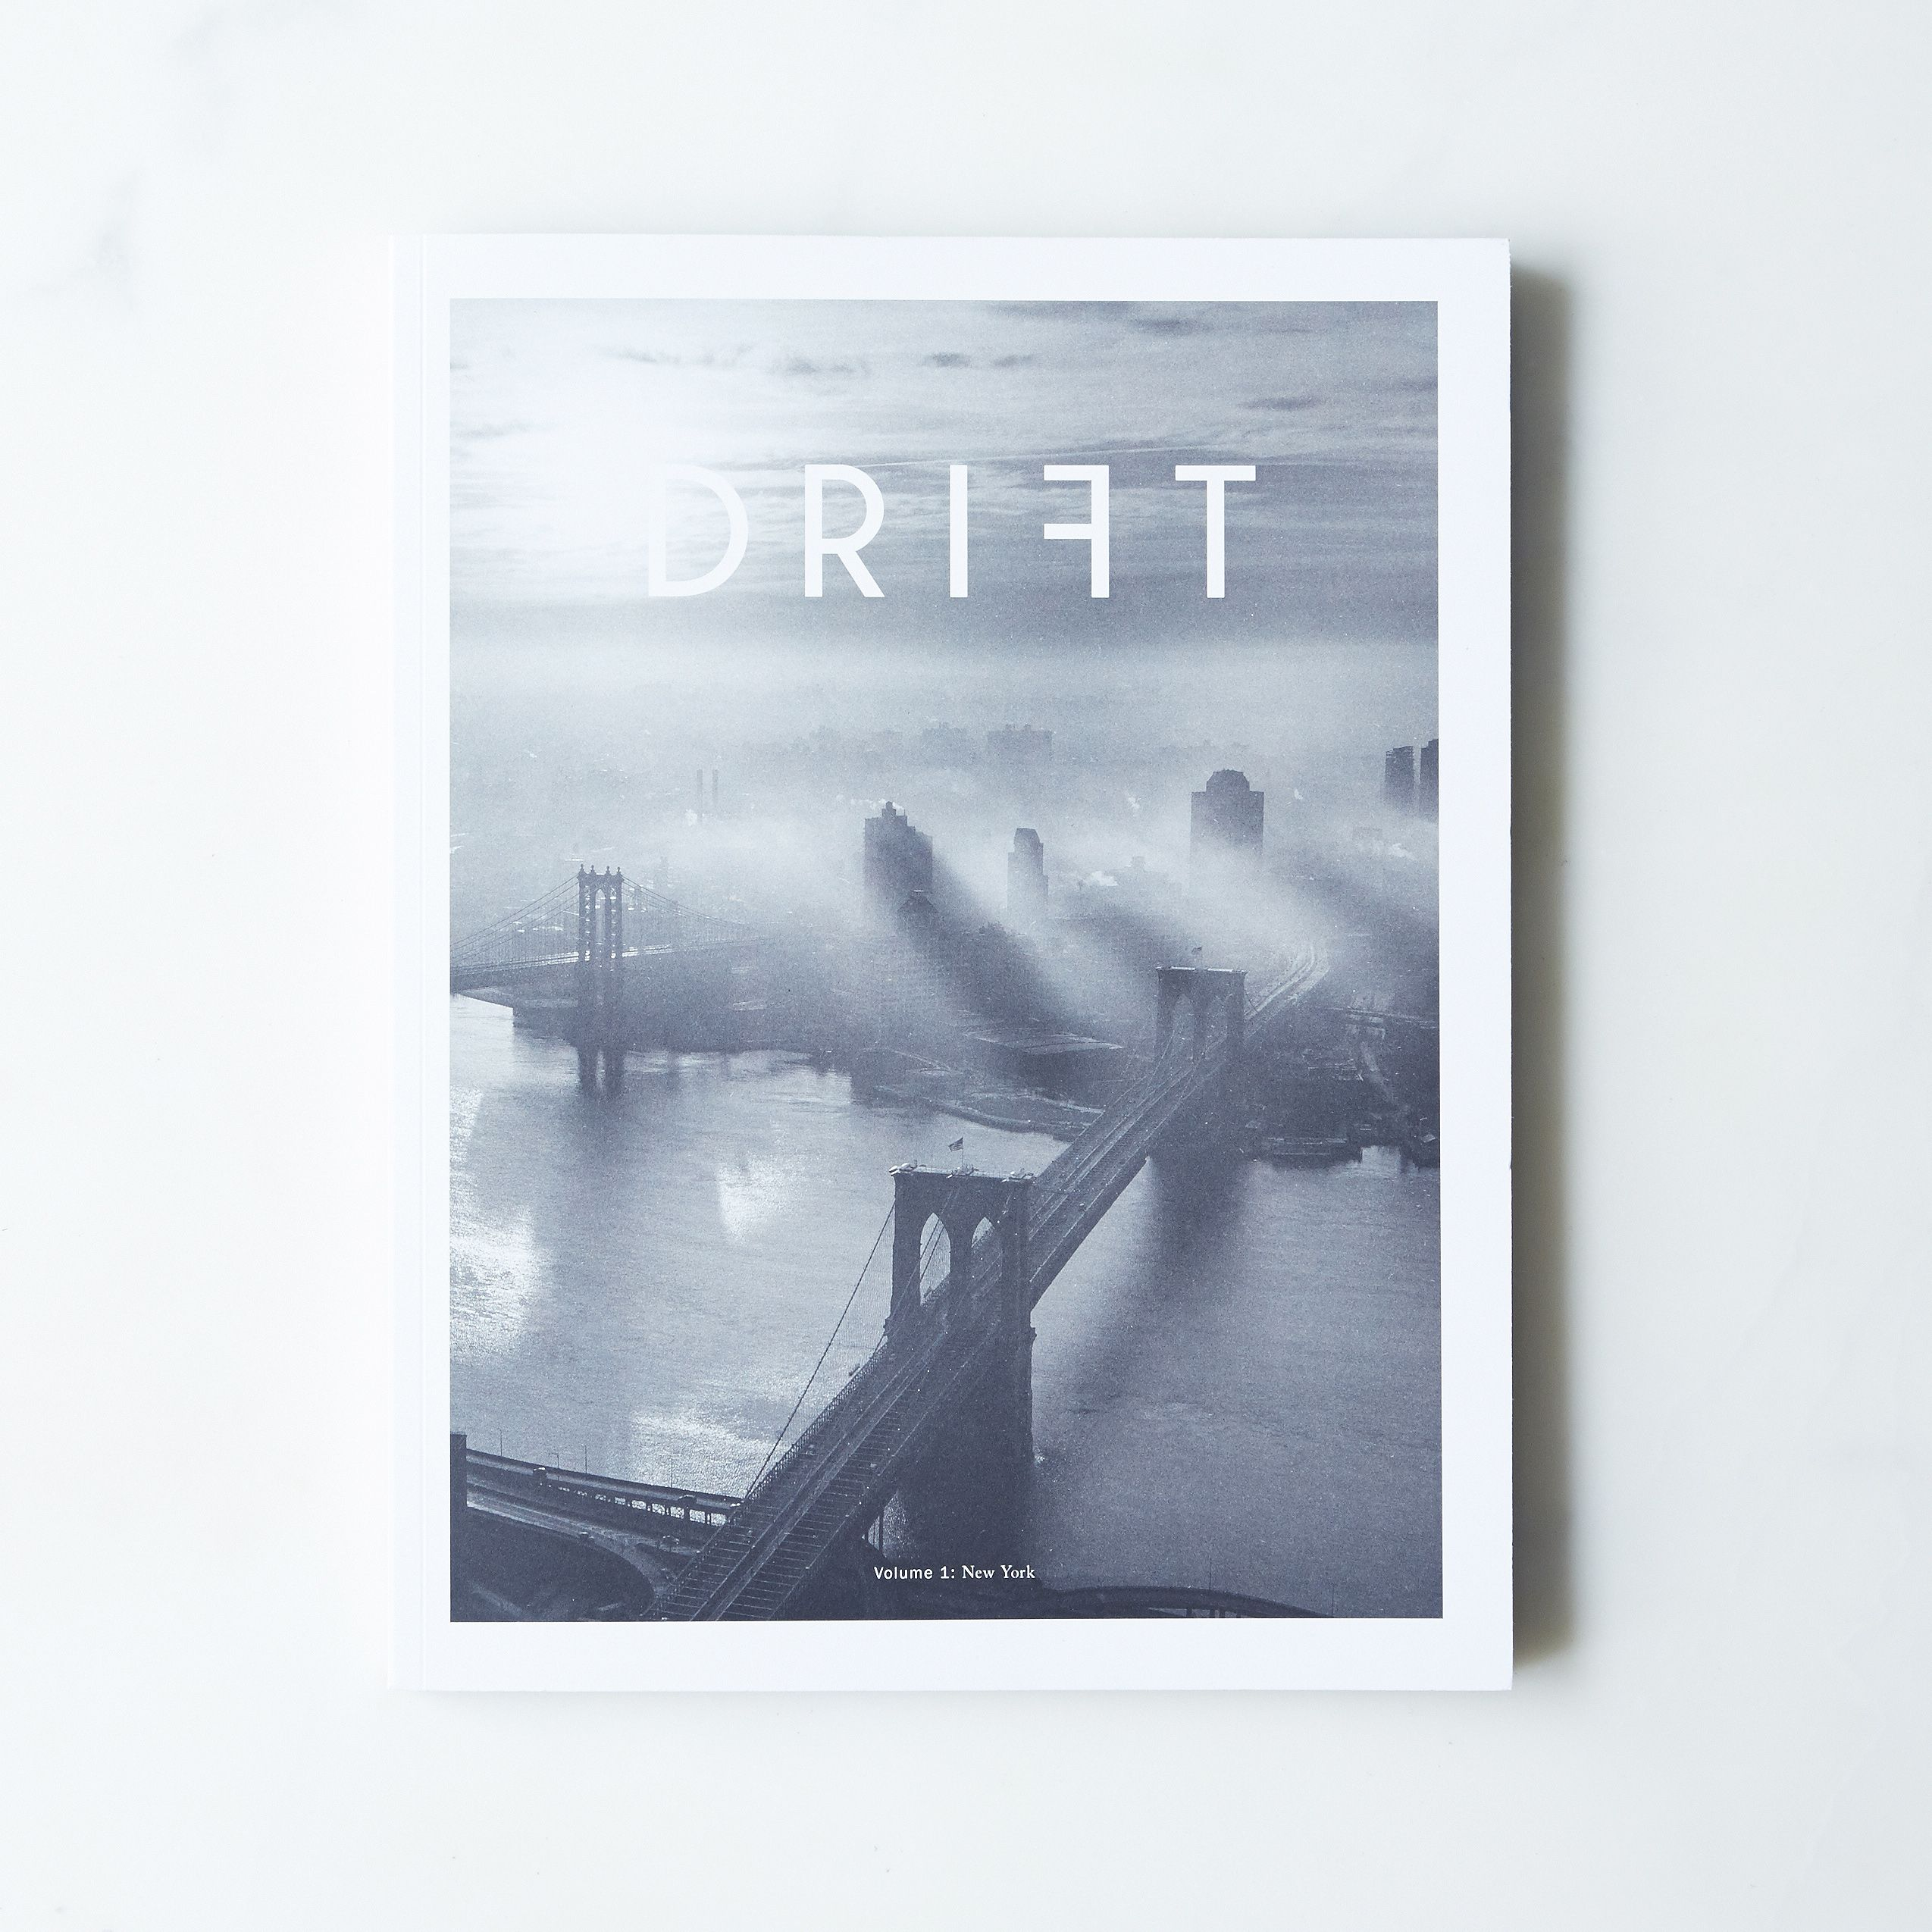 Cd566460 e9bb 4d8c a5fb 74151e035de2  2015 0121 drift magazine volume1 mw silo 266